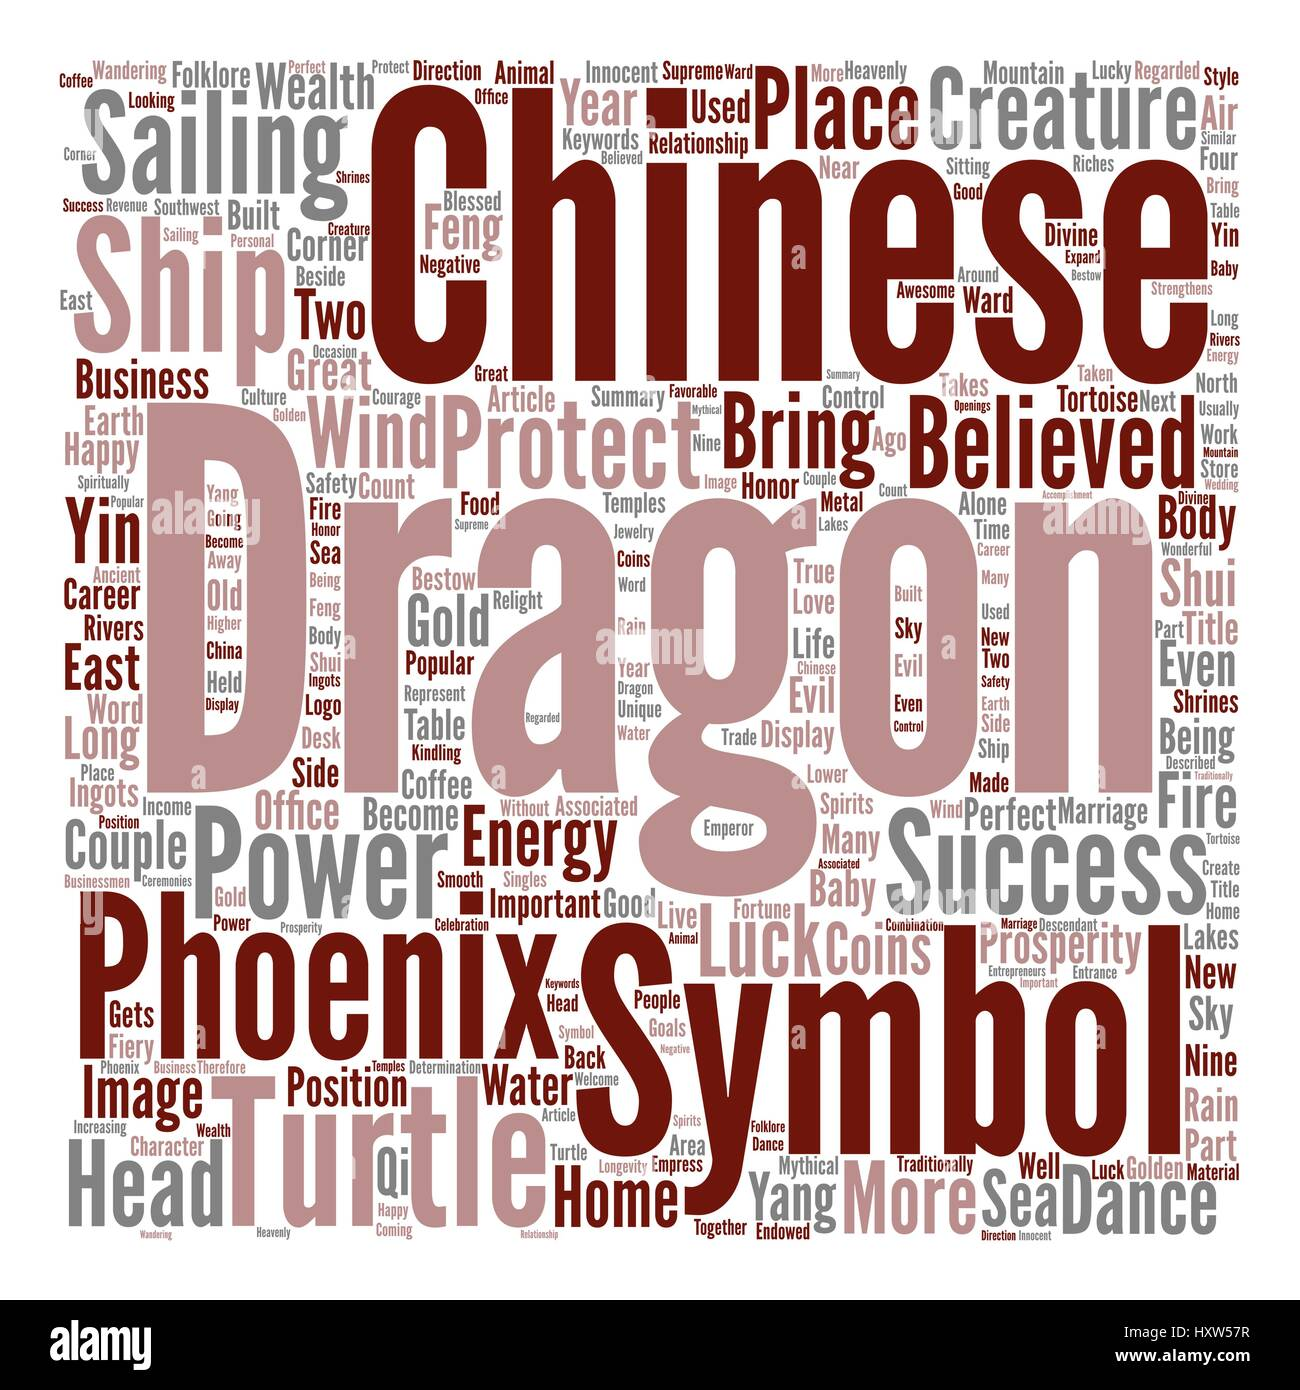 Chinese Good Luck Symbols Part Power Of Chinese Dragons Text Stock